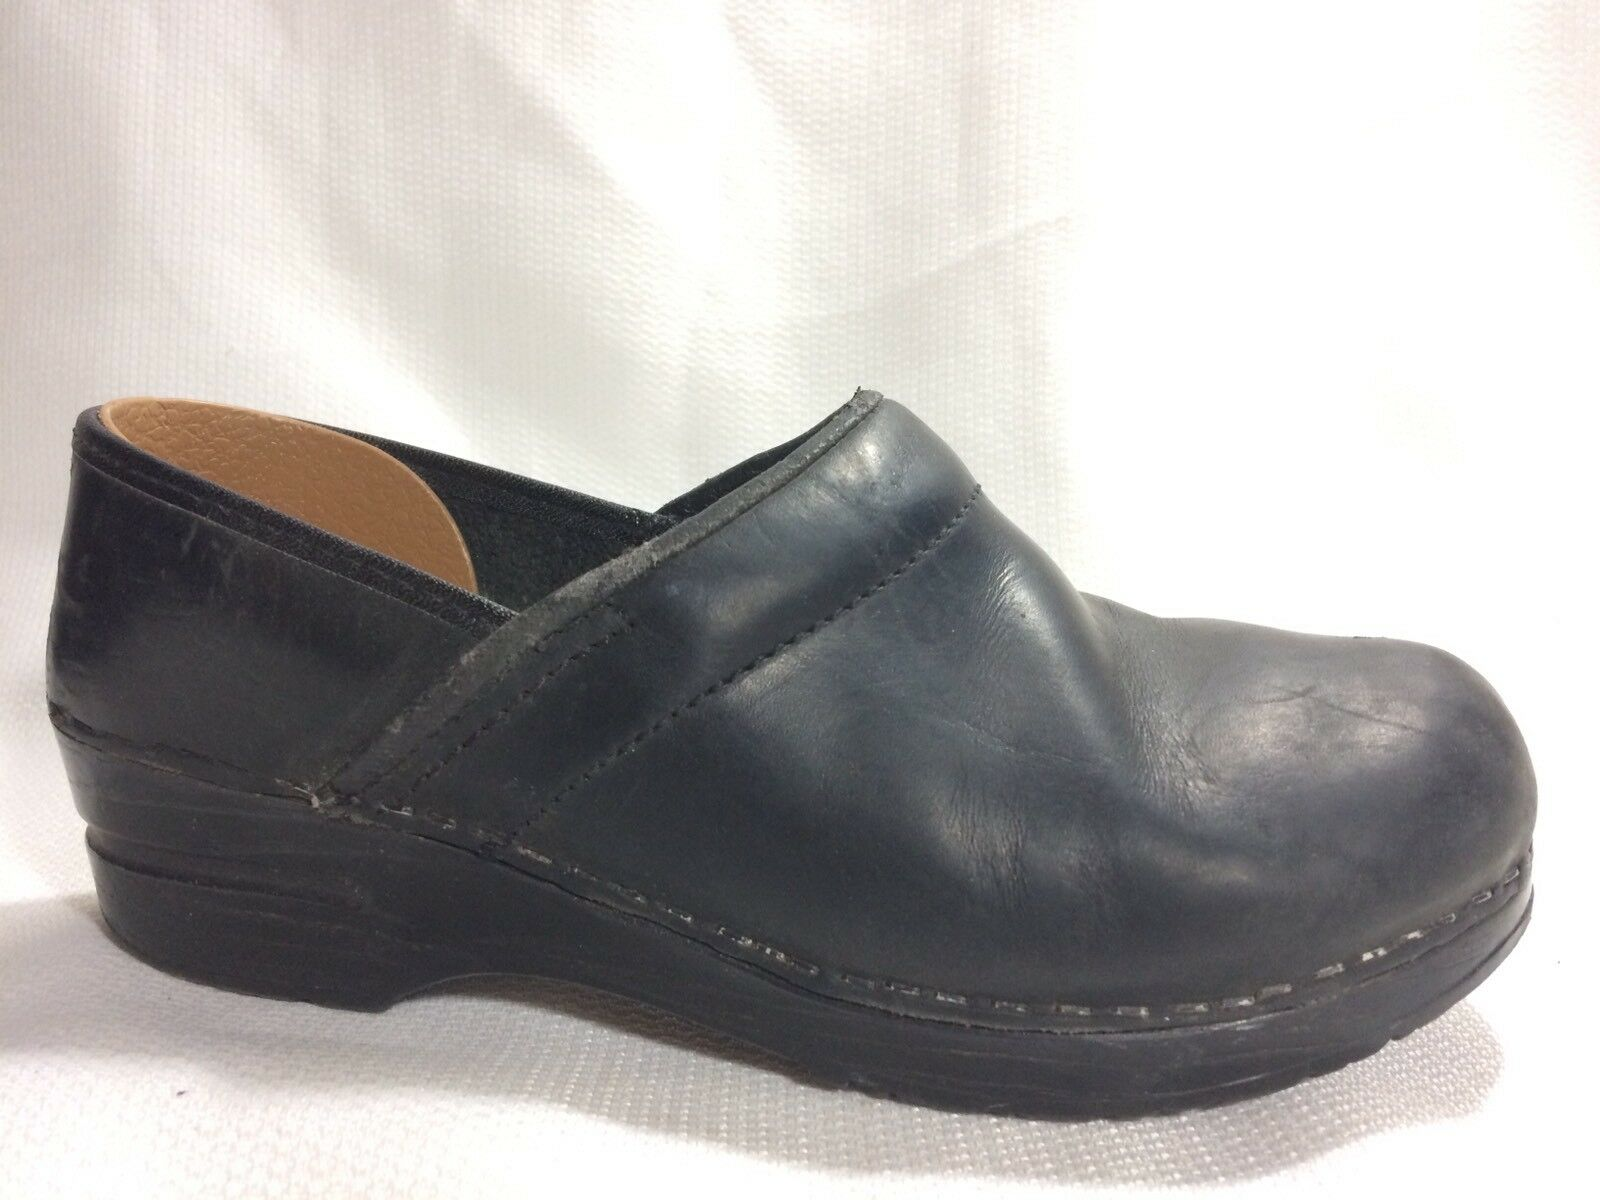 DANSKO Womens 6.5 -7 M Clog Slip On Leather Nurse Shoe Work Sanita Comfort